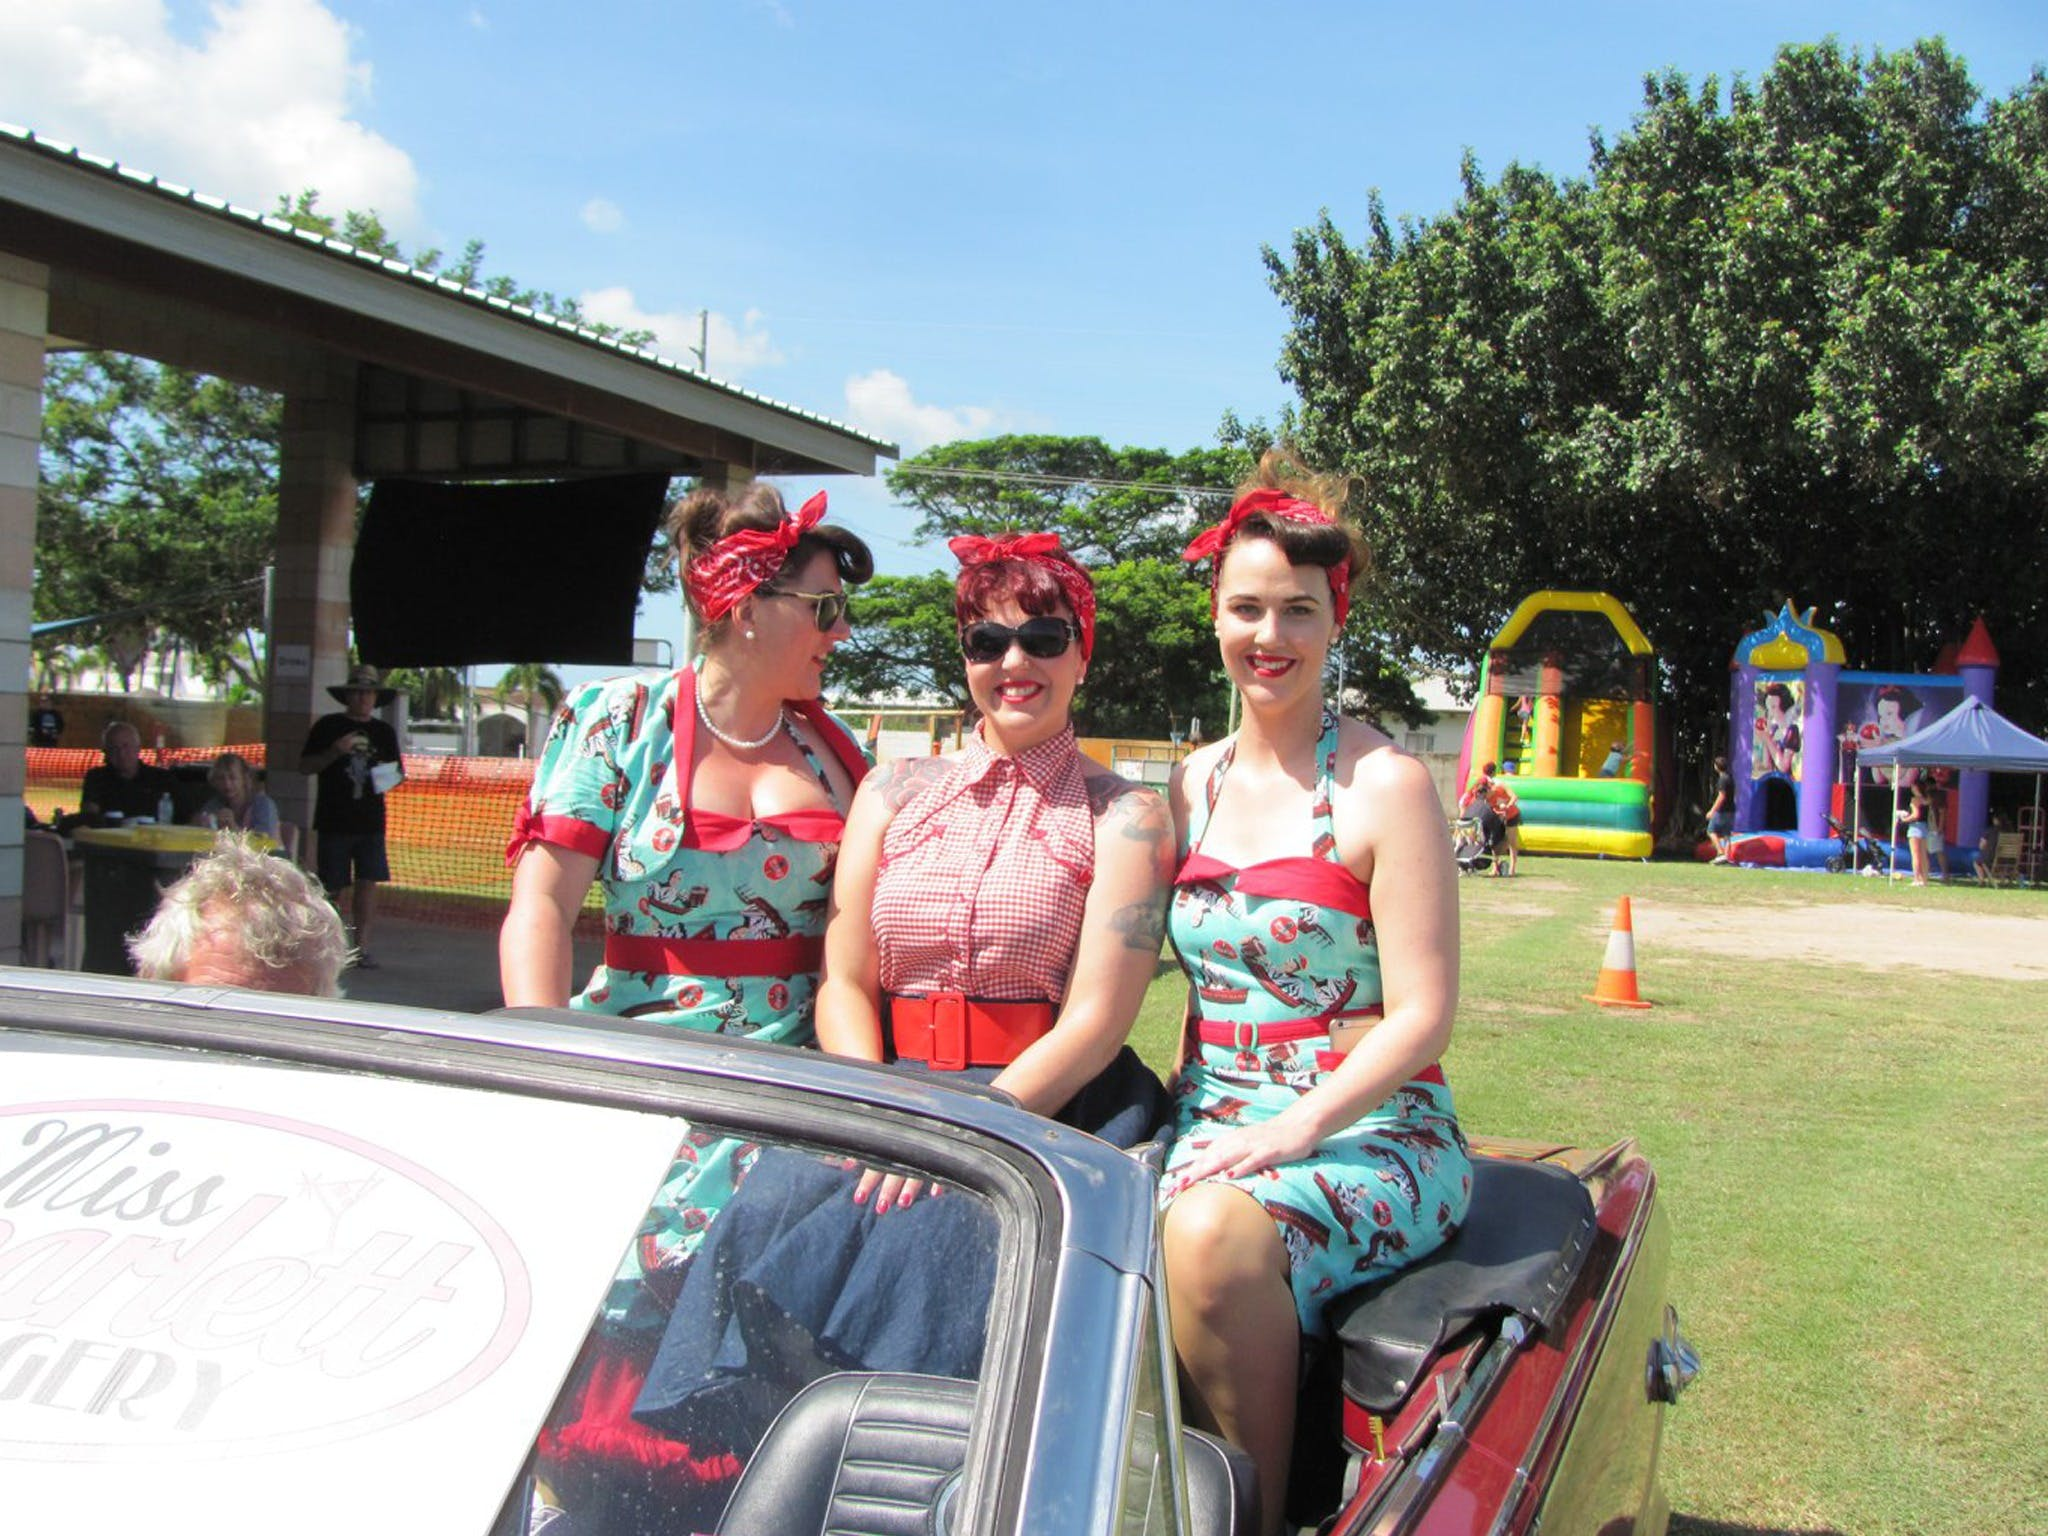 Burdekin Auto Festival - Accommodation Tasmania